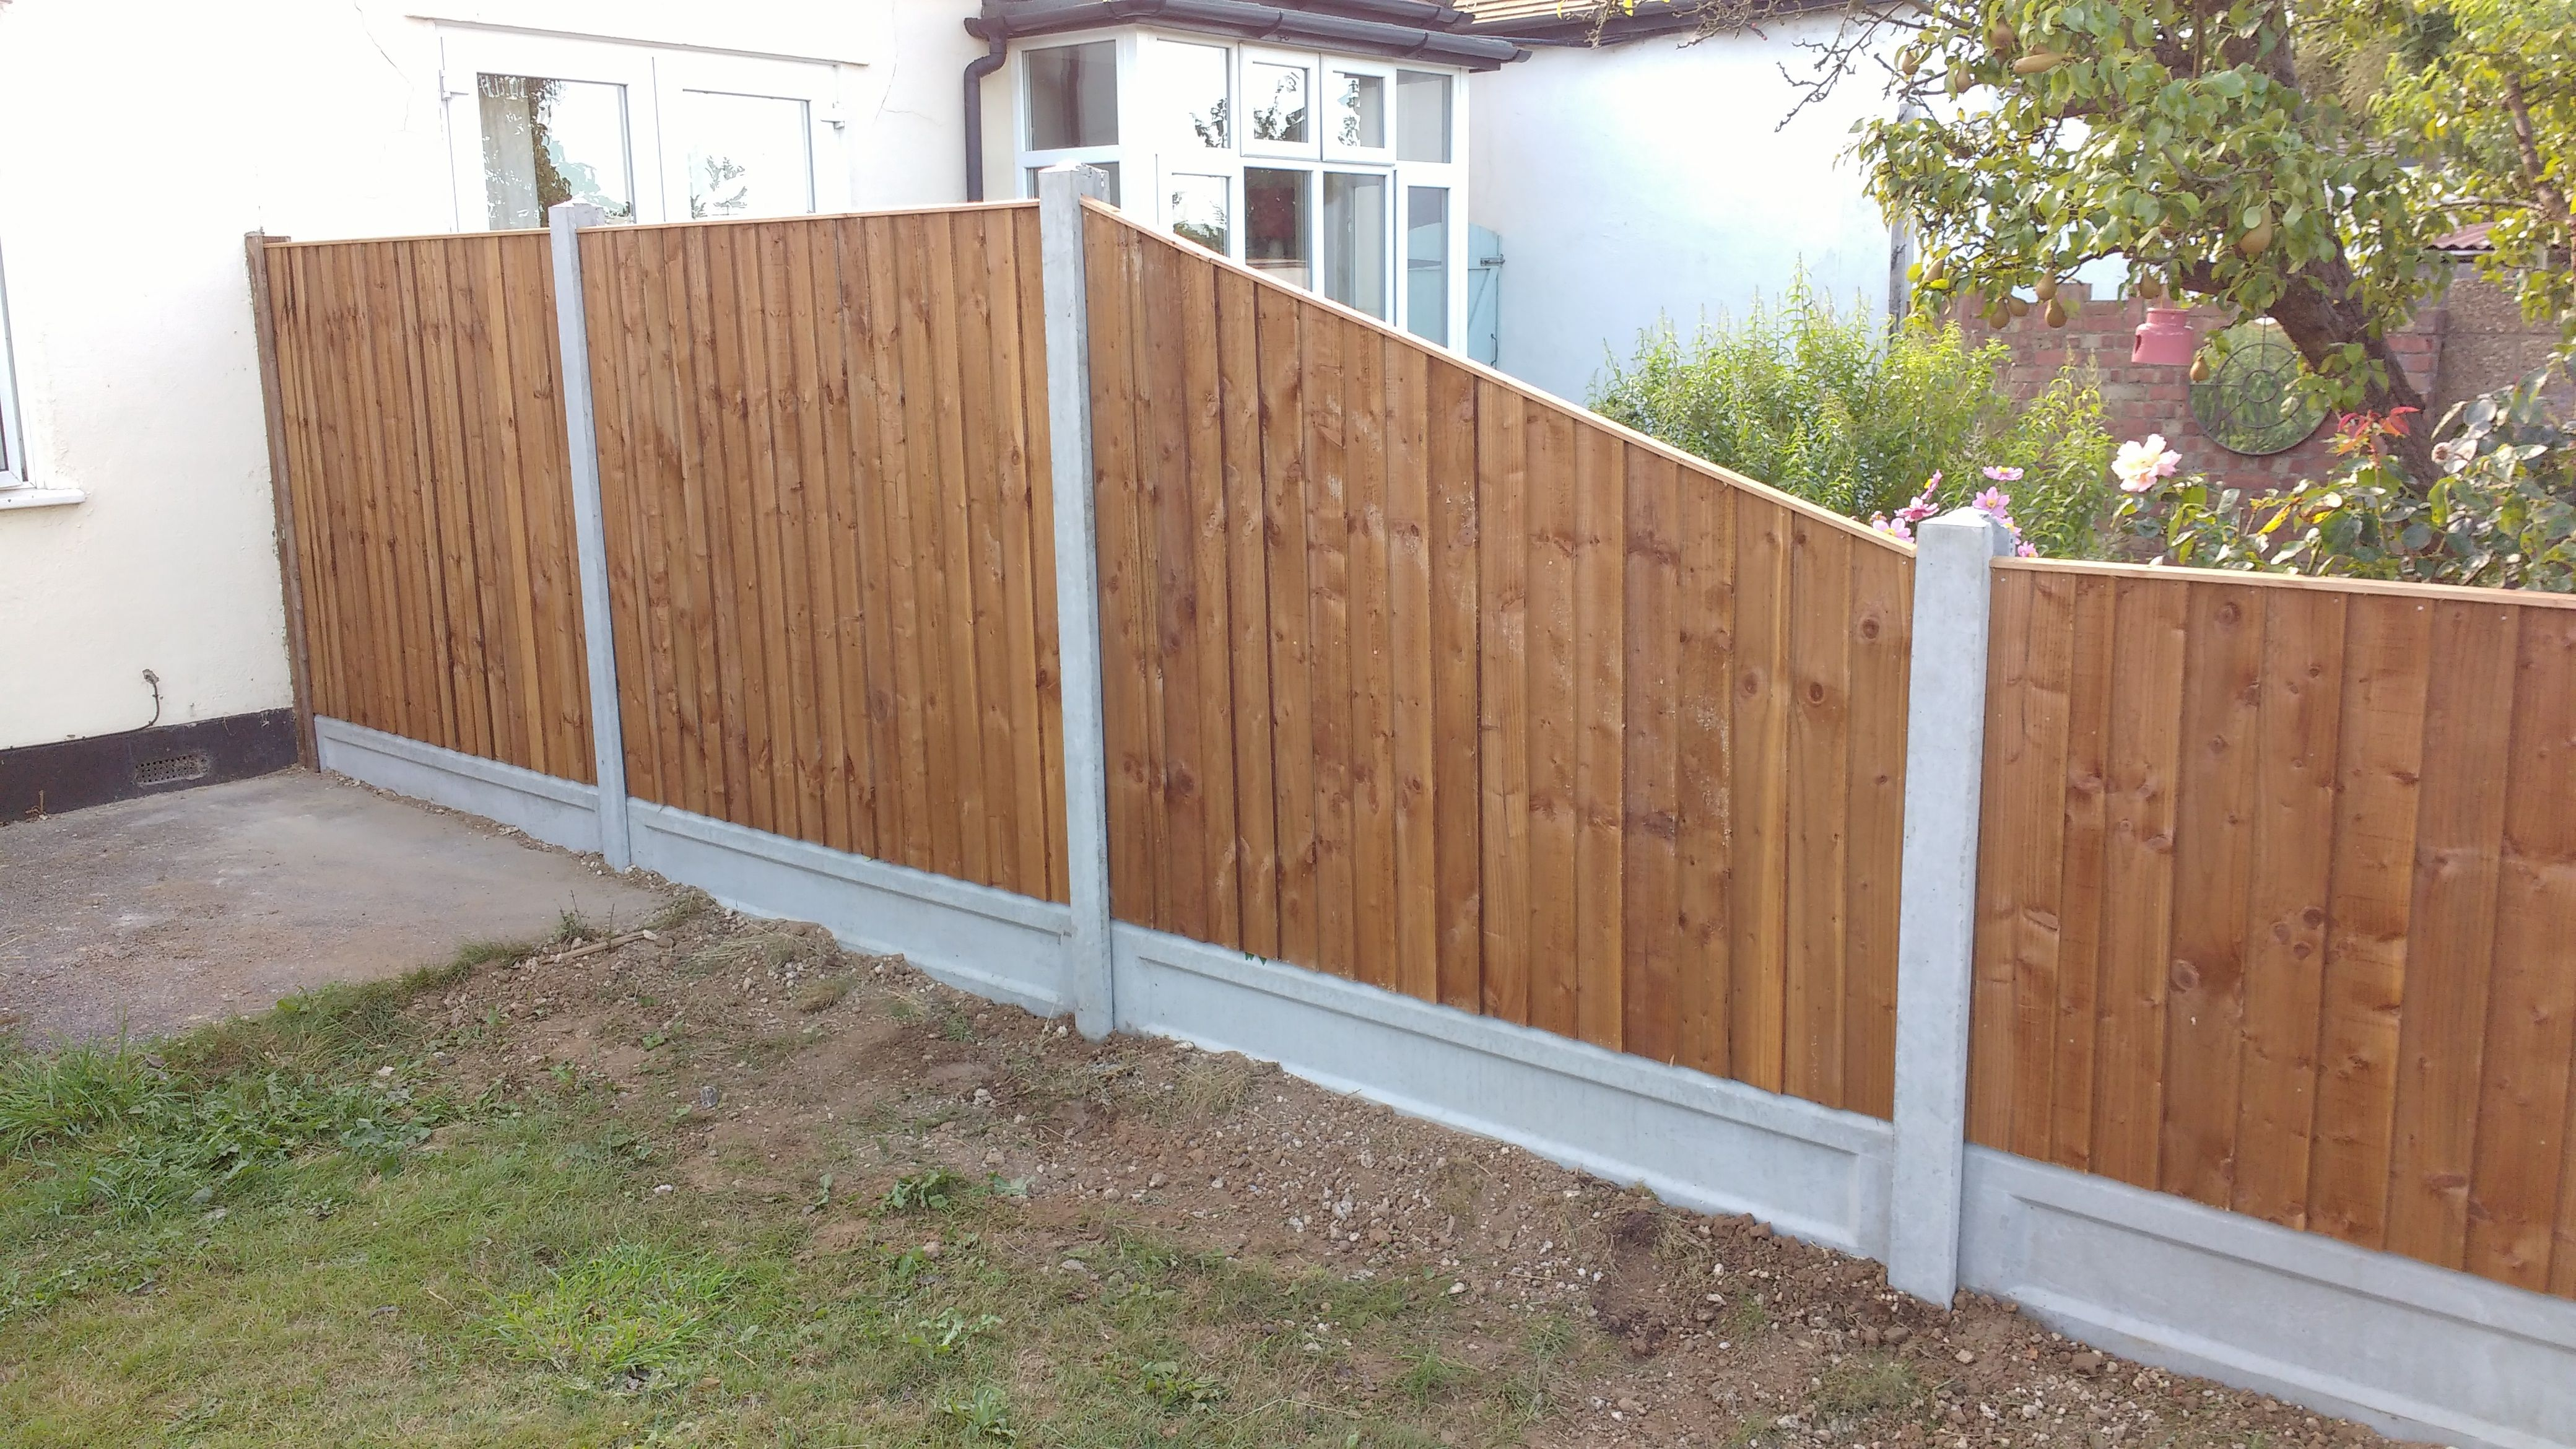 Feather edged fence panels and concrete recessed gravel boards in feather edged fence panels and concrete recessed gravel boards in concrete posts including sloping panel baanklon Gallery